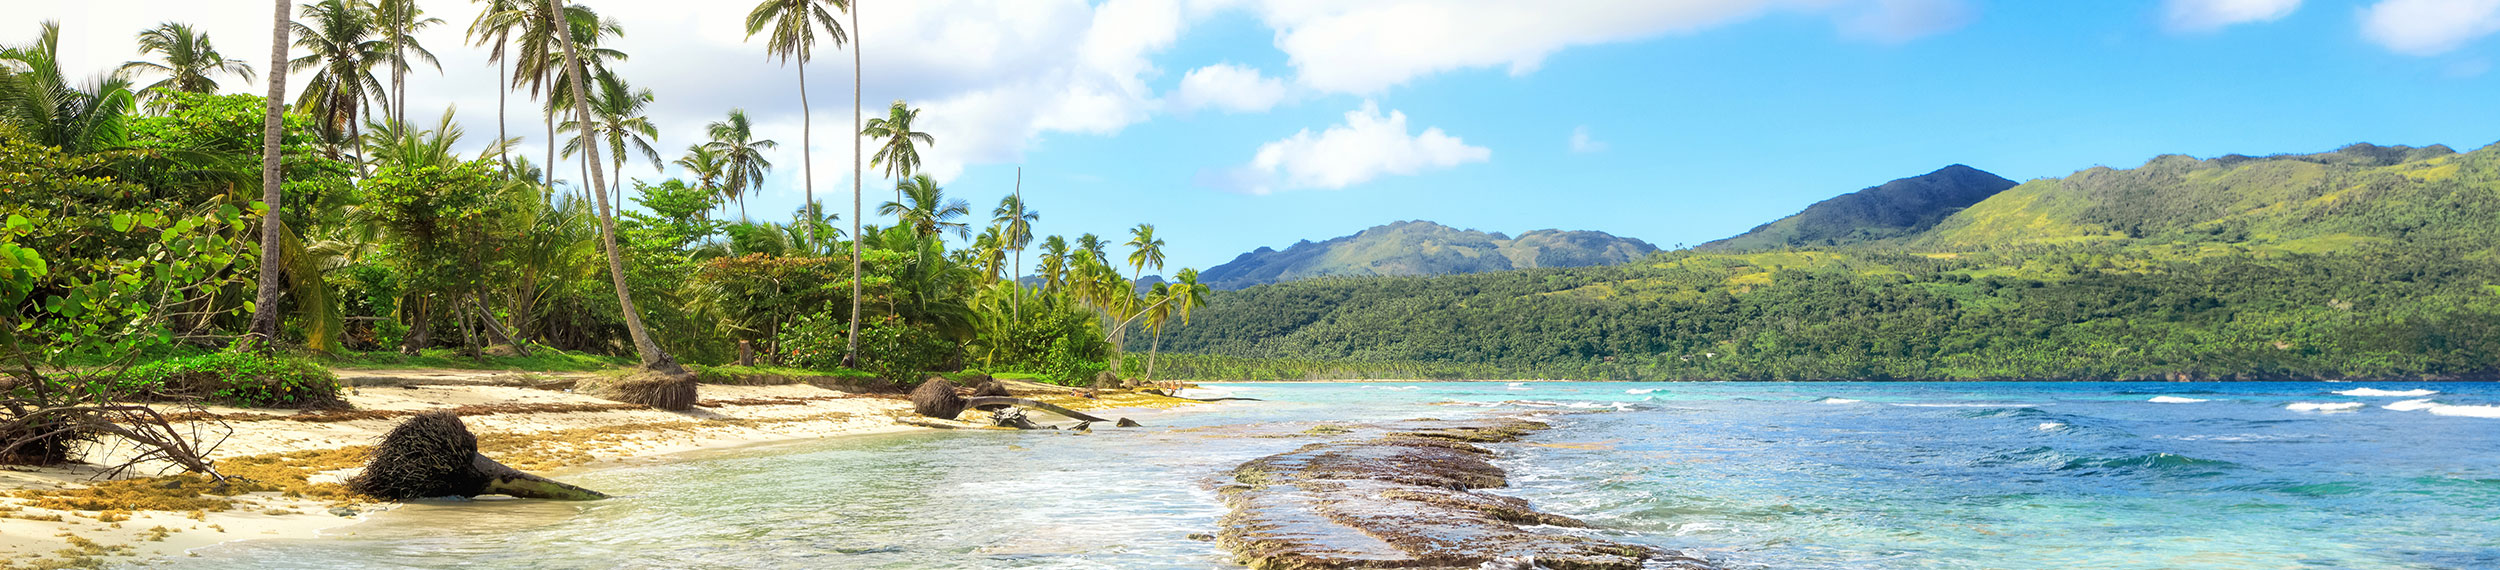 Panorama of famous secluded beach of Rincon with aqua colored water and palm trees on a beautiful day in Las Galeras, Dominican Republic.